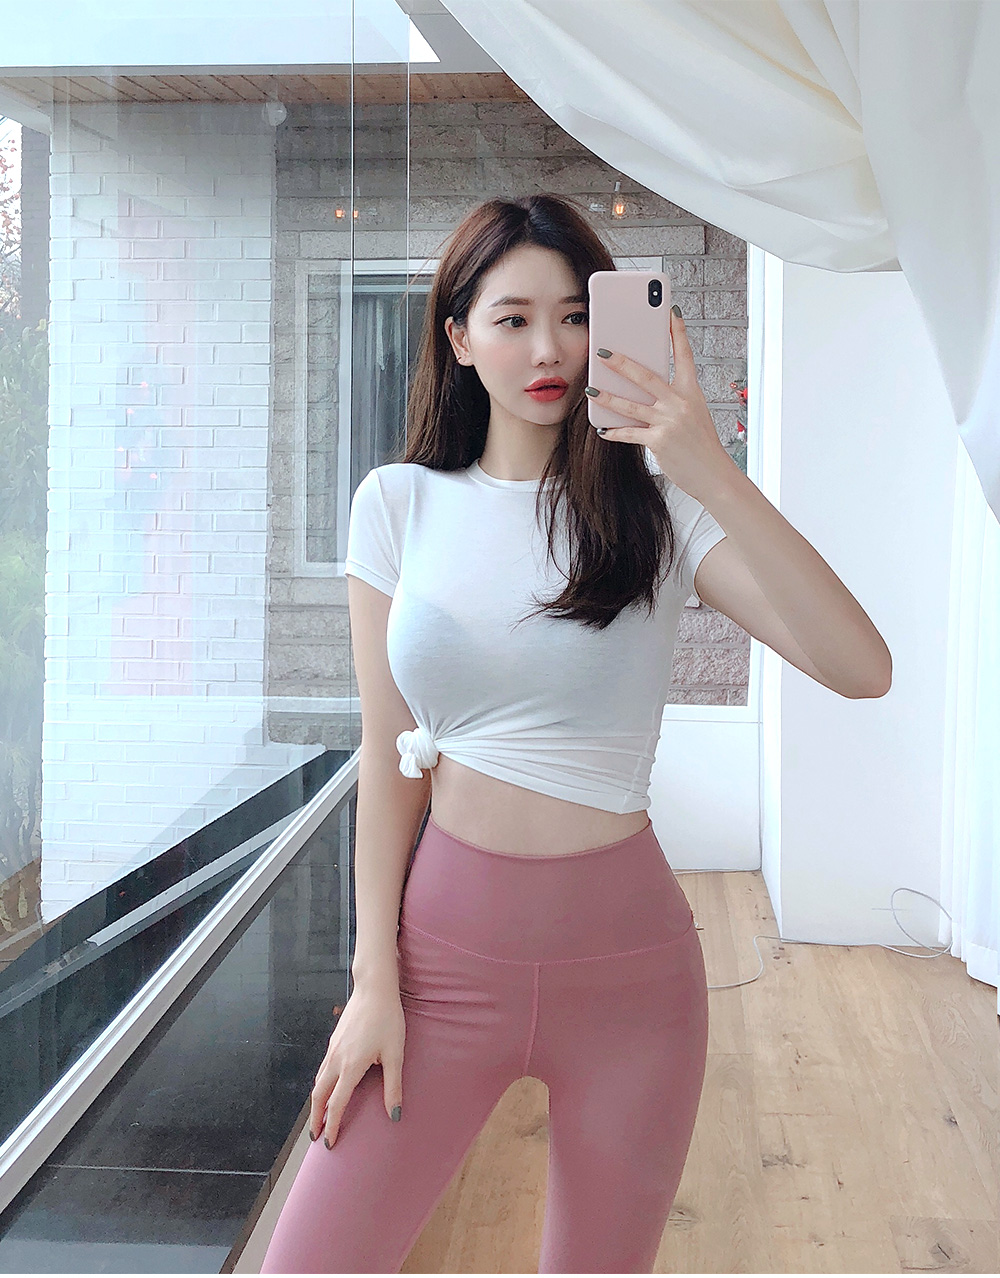 //cdn.nhanh.vn/cdn/store/29770/psCT/20190108/11027736/_5Kg_Perfect_Line_Leggings_Plus_(2019_22_82).jpg